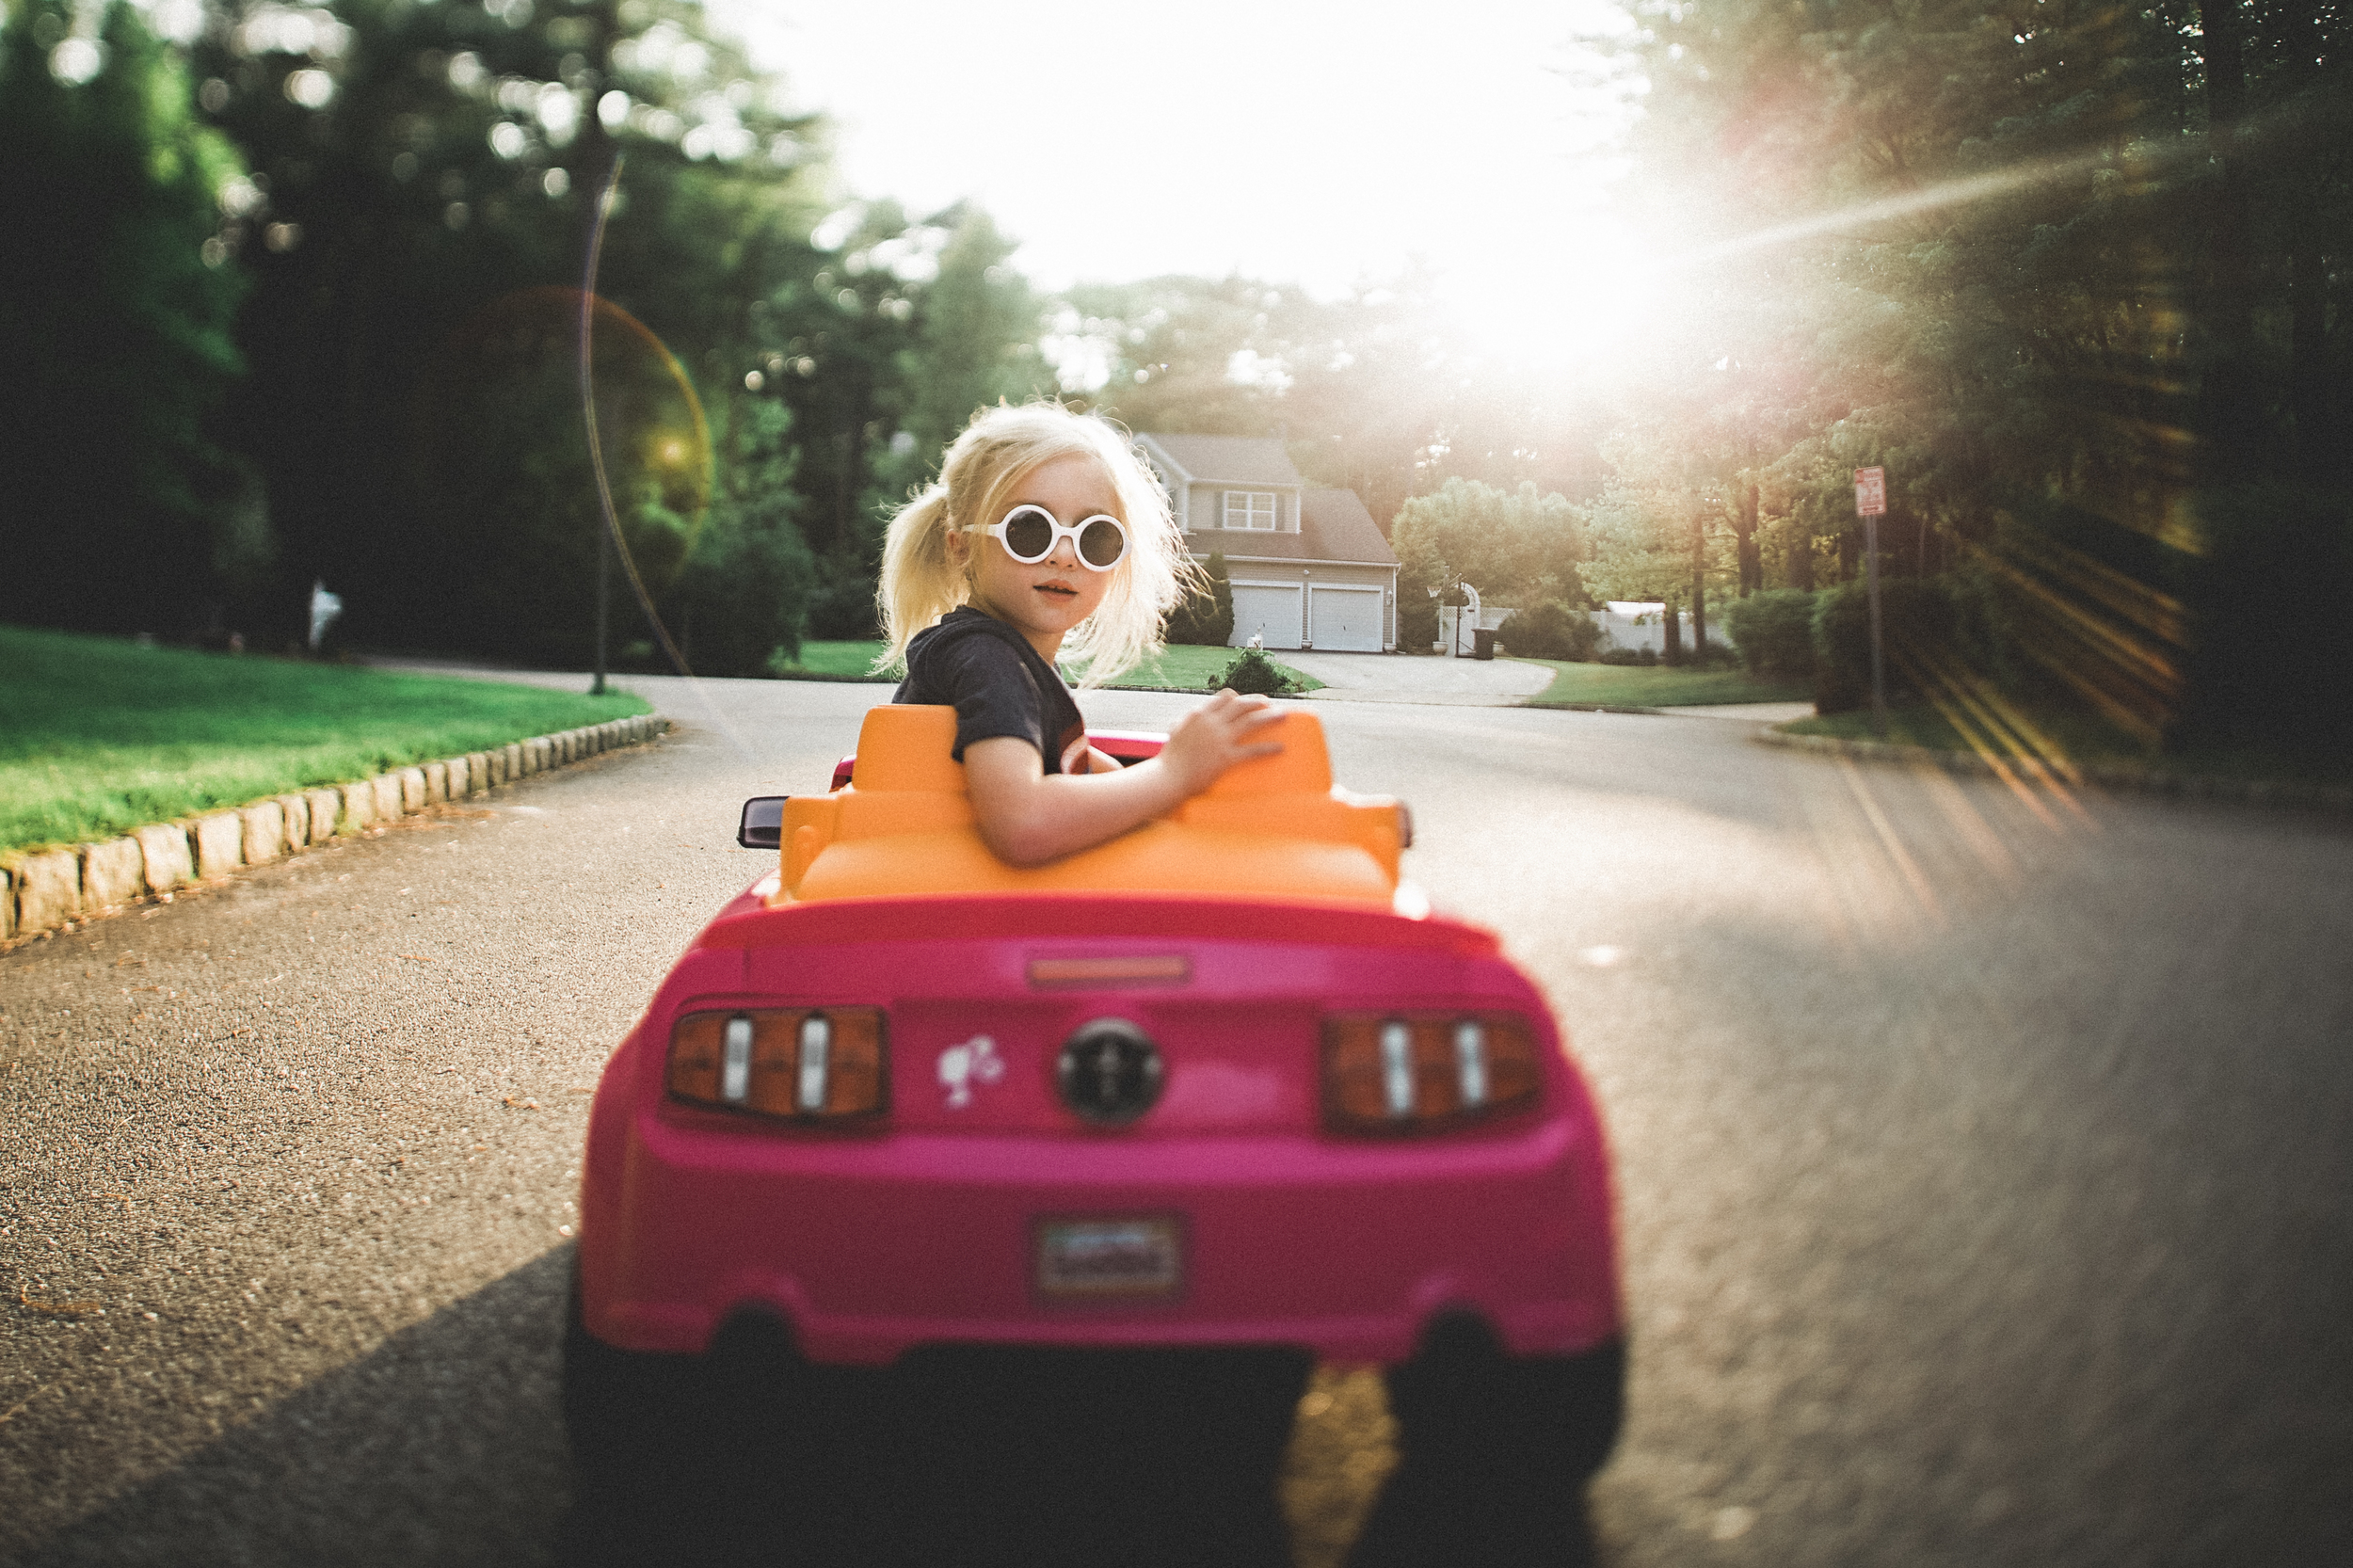 Trips in her car.